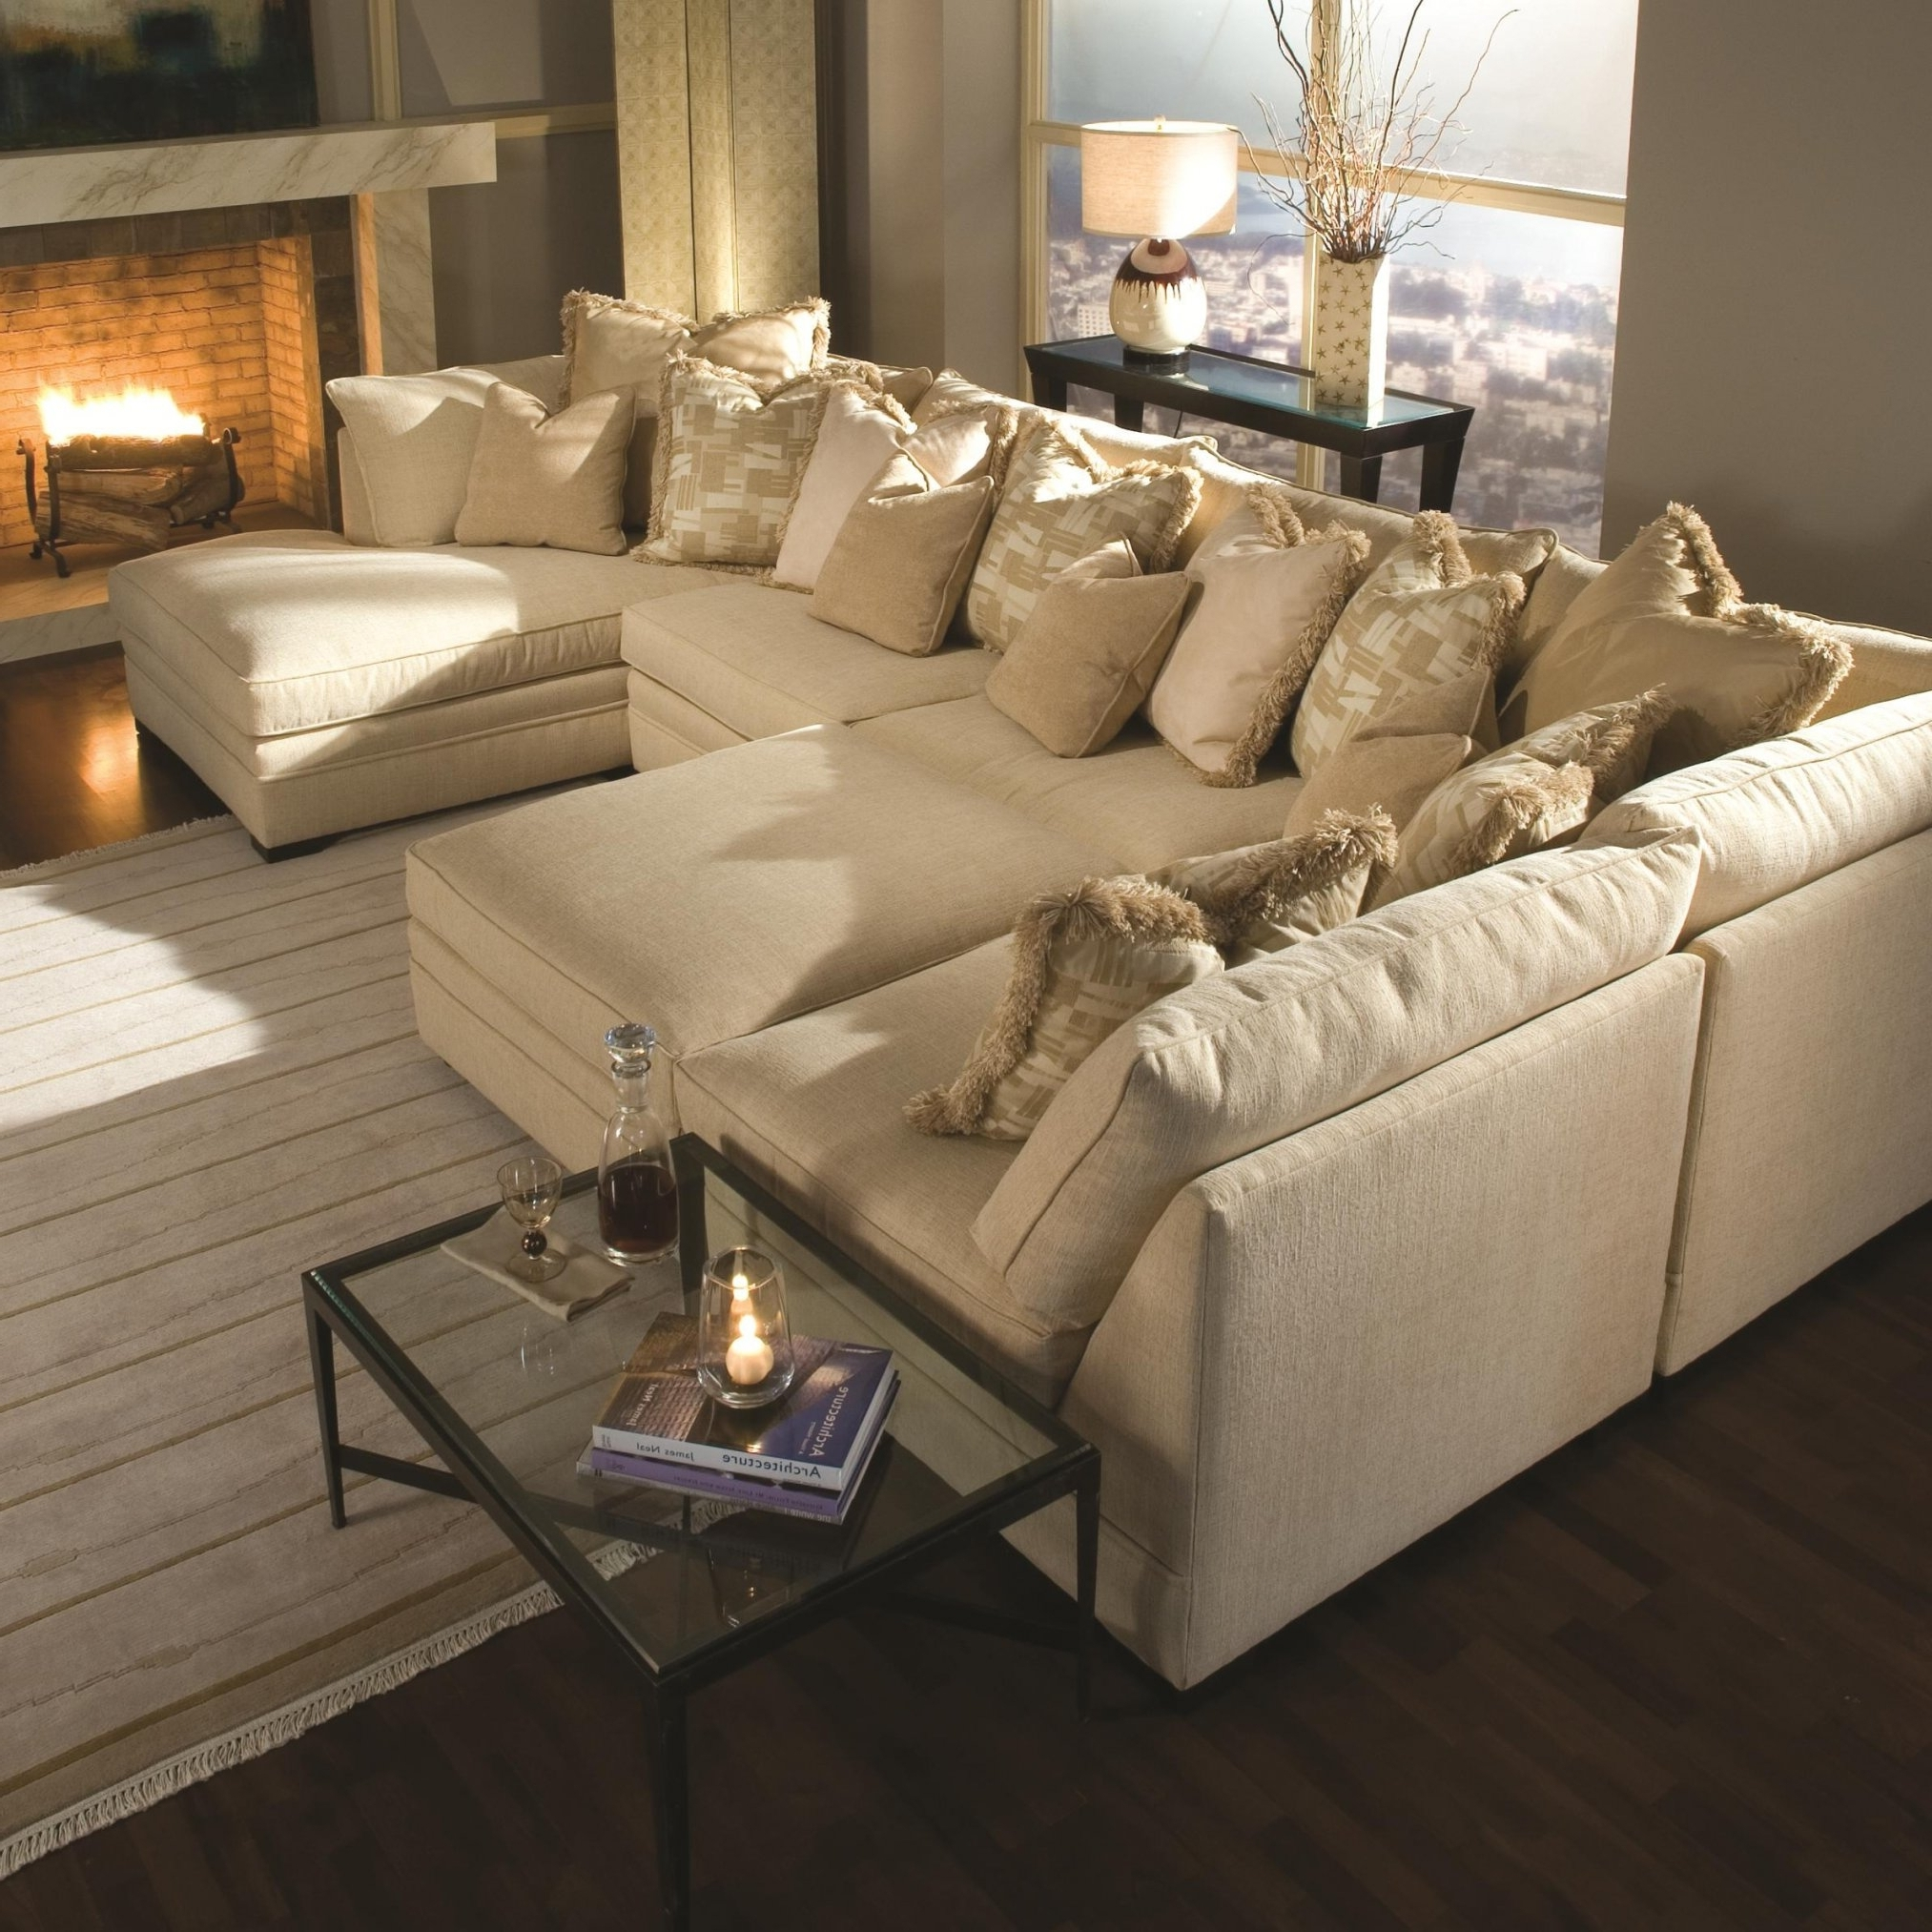 Double Chaise Sectional Sofas With Regard To Well Known House 7100 Contemporary U Shape Sectional Sofa With With Regard To (View 12 of 15)